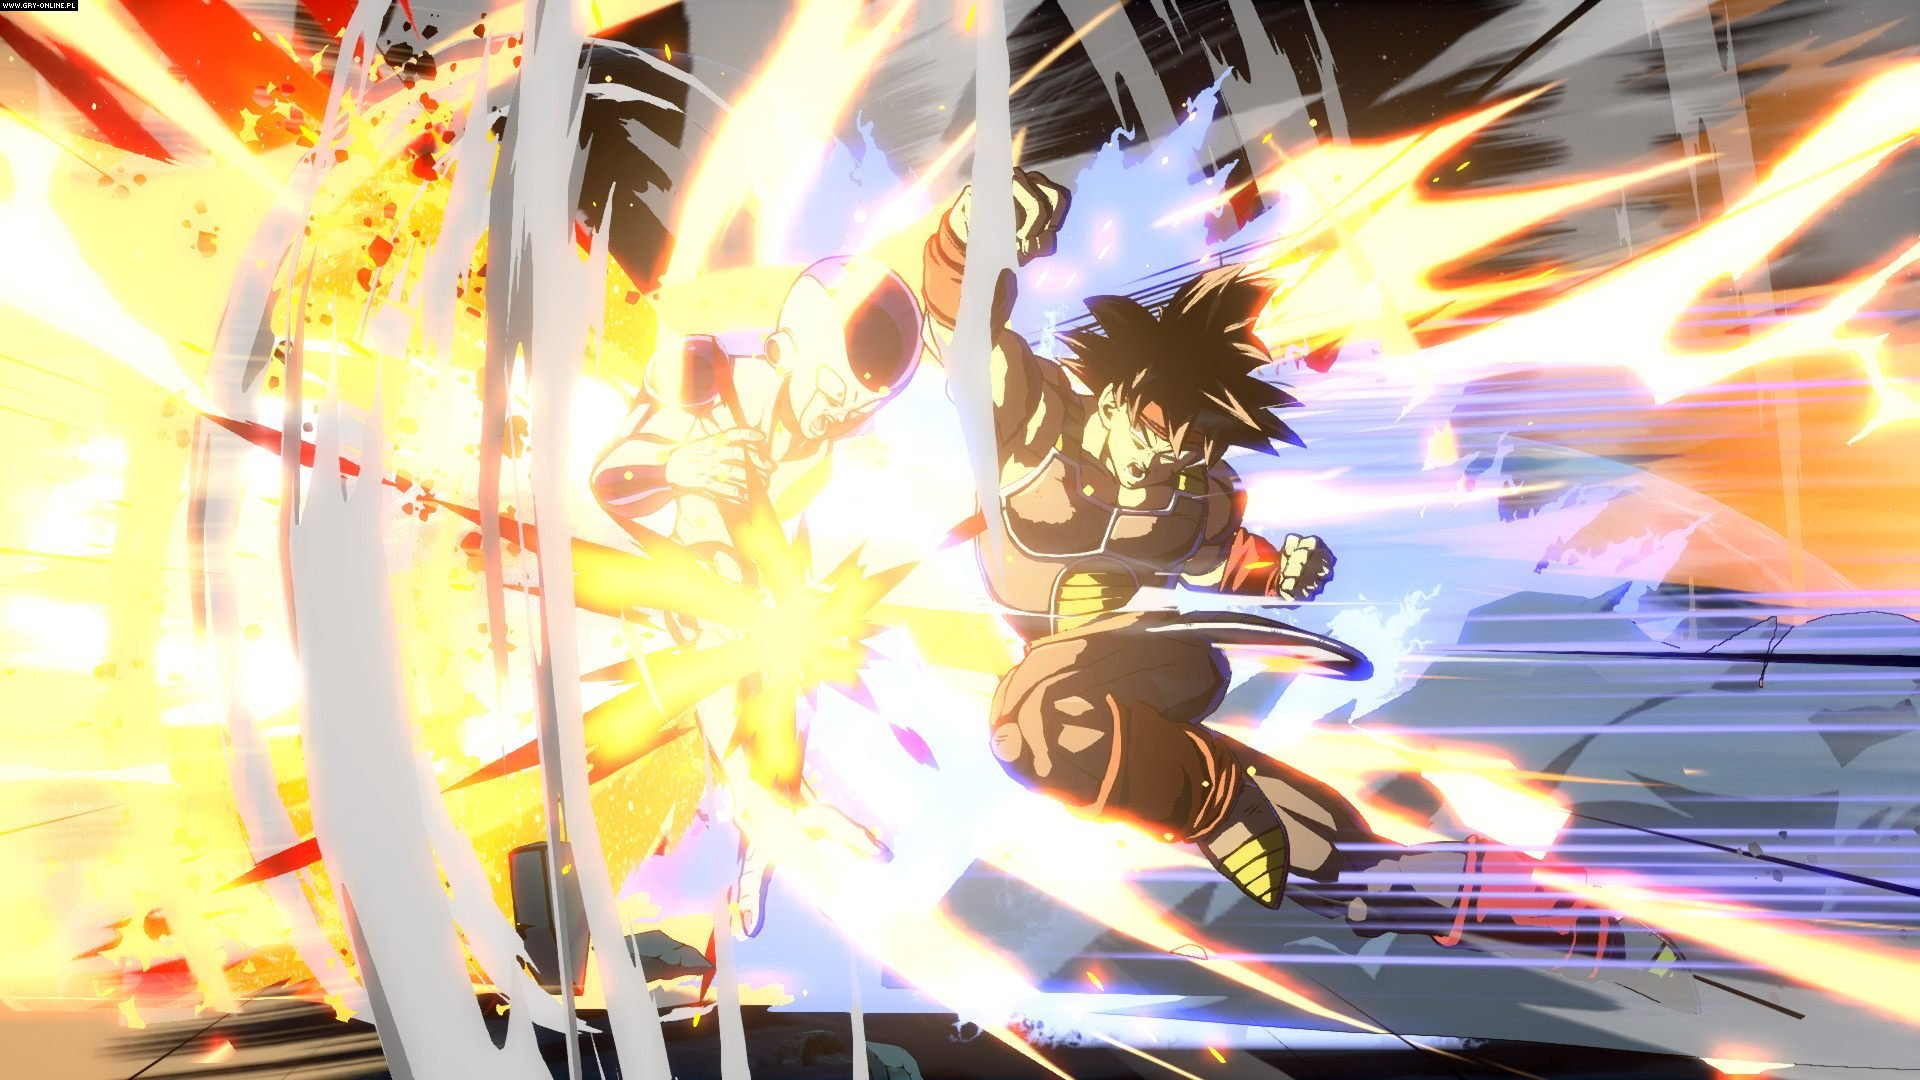 Dragon Ball FighterZ PC, PS4, XONE, Switch Gry Screen 64/230, Arc System Works, Bandai Namco Entertainment